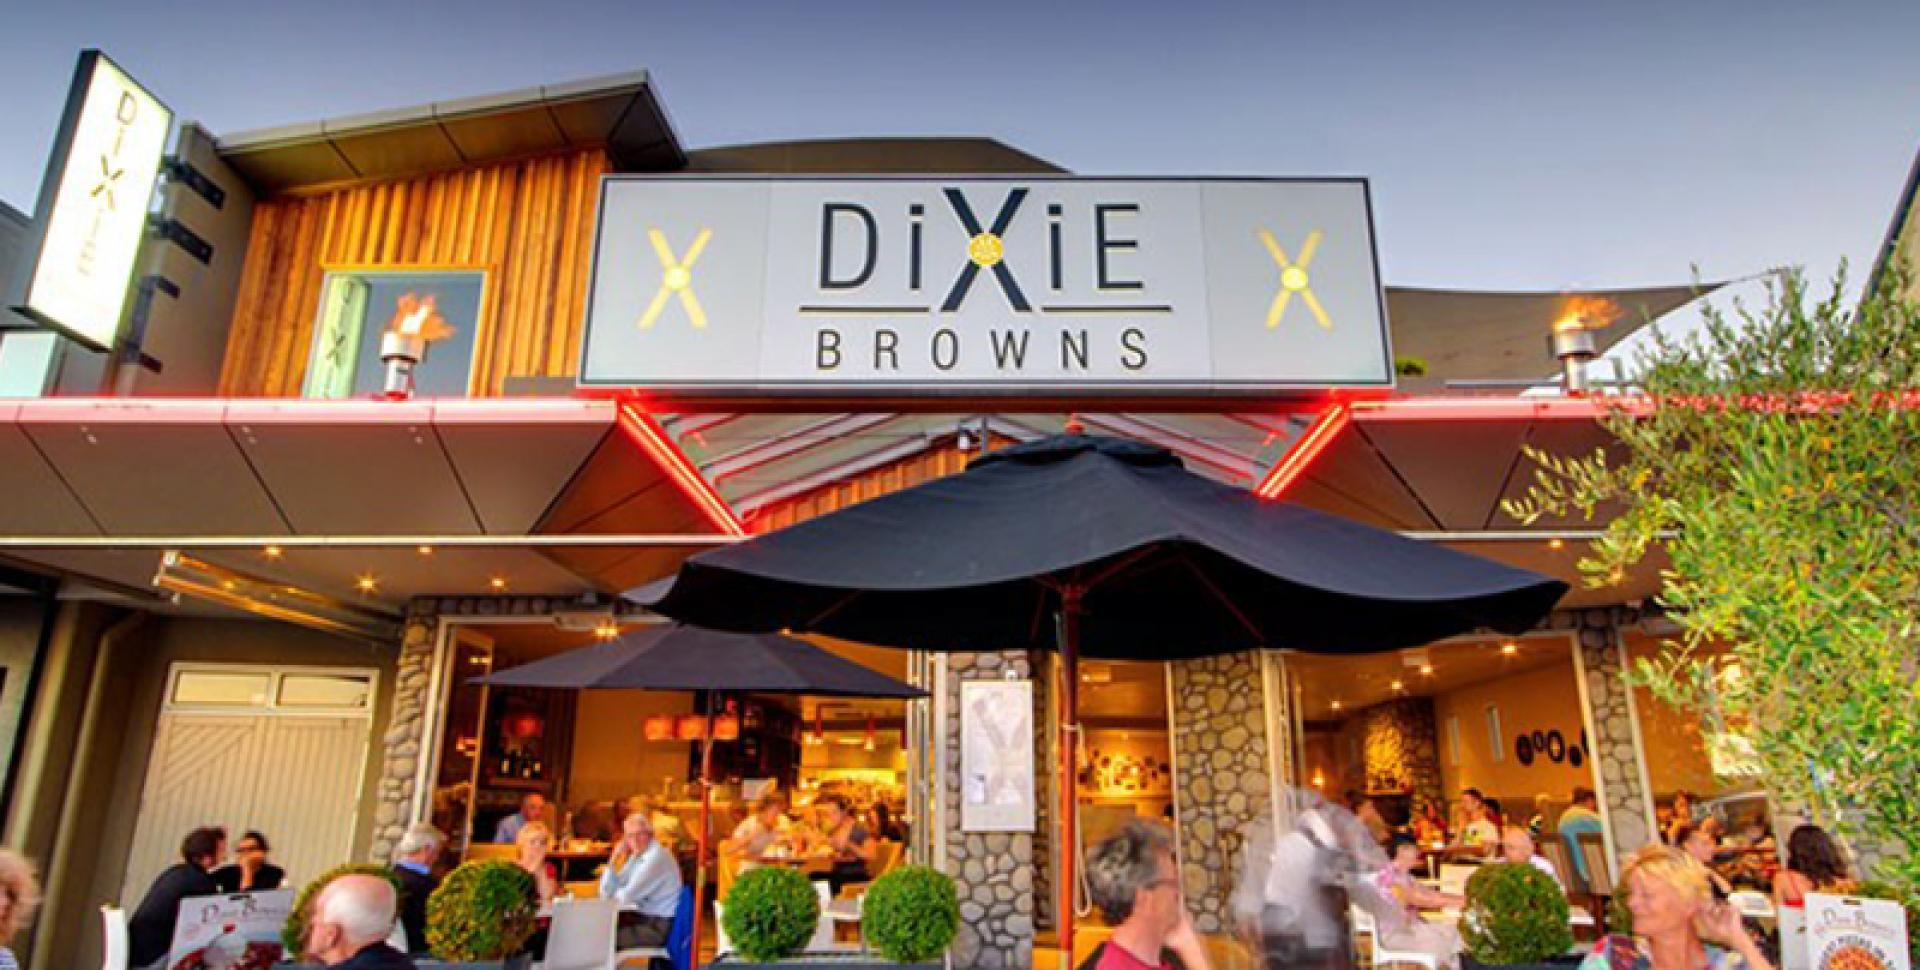 Dixie Browns - Taupo